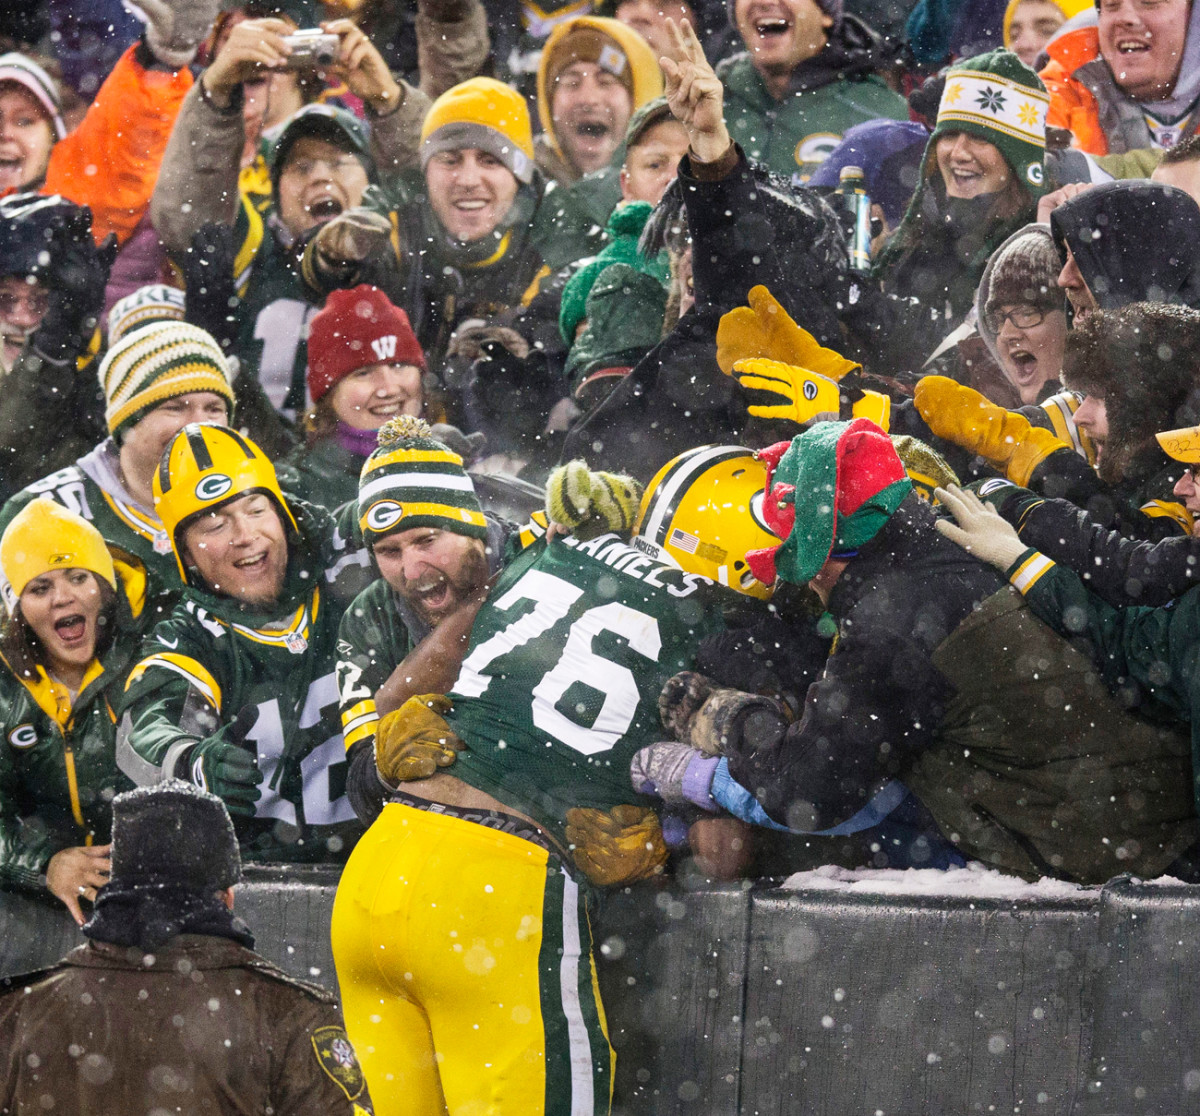 Mike Daniels shows less-than-perfect form on his firm Lambeau Leap.